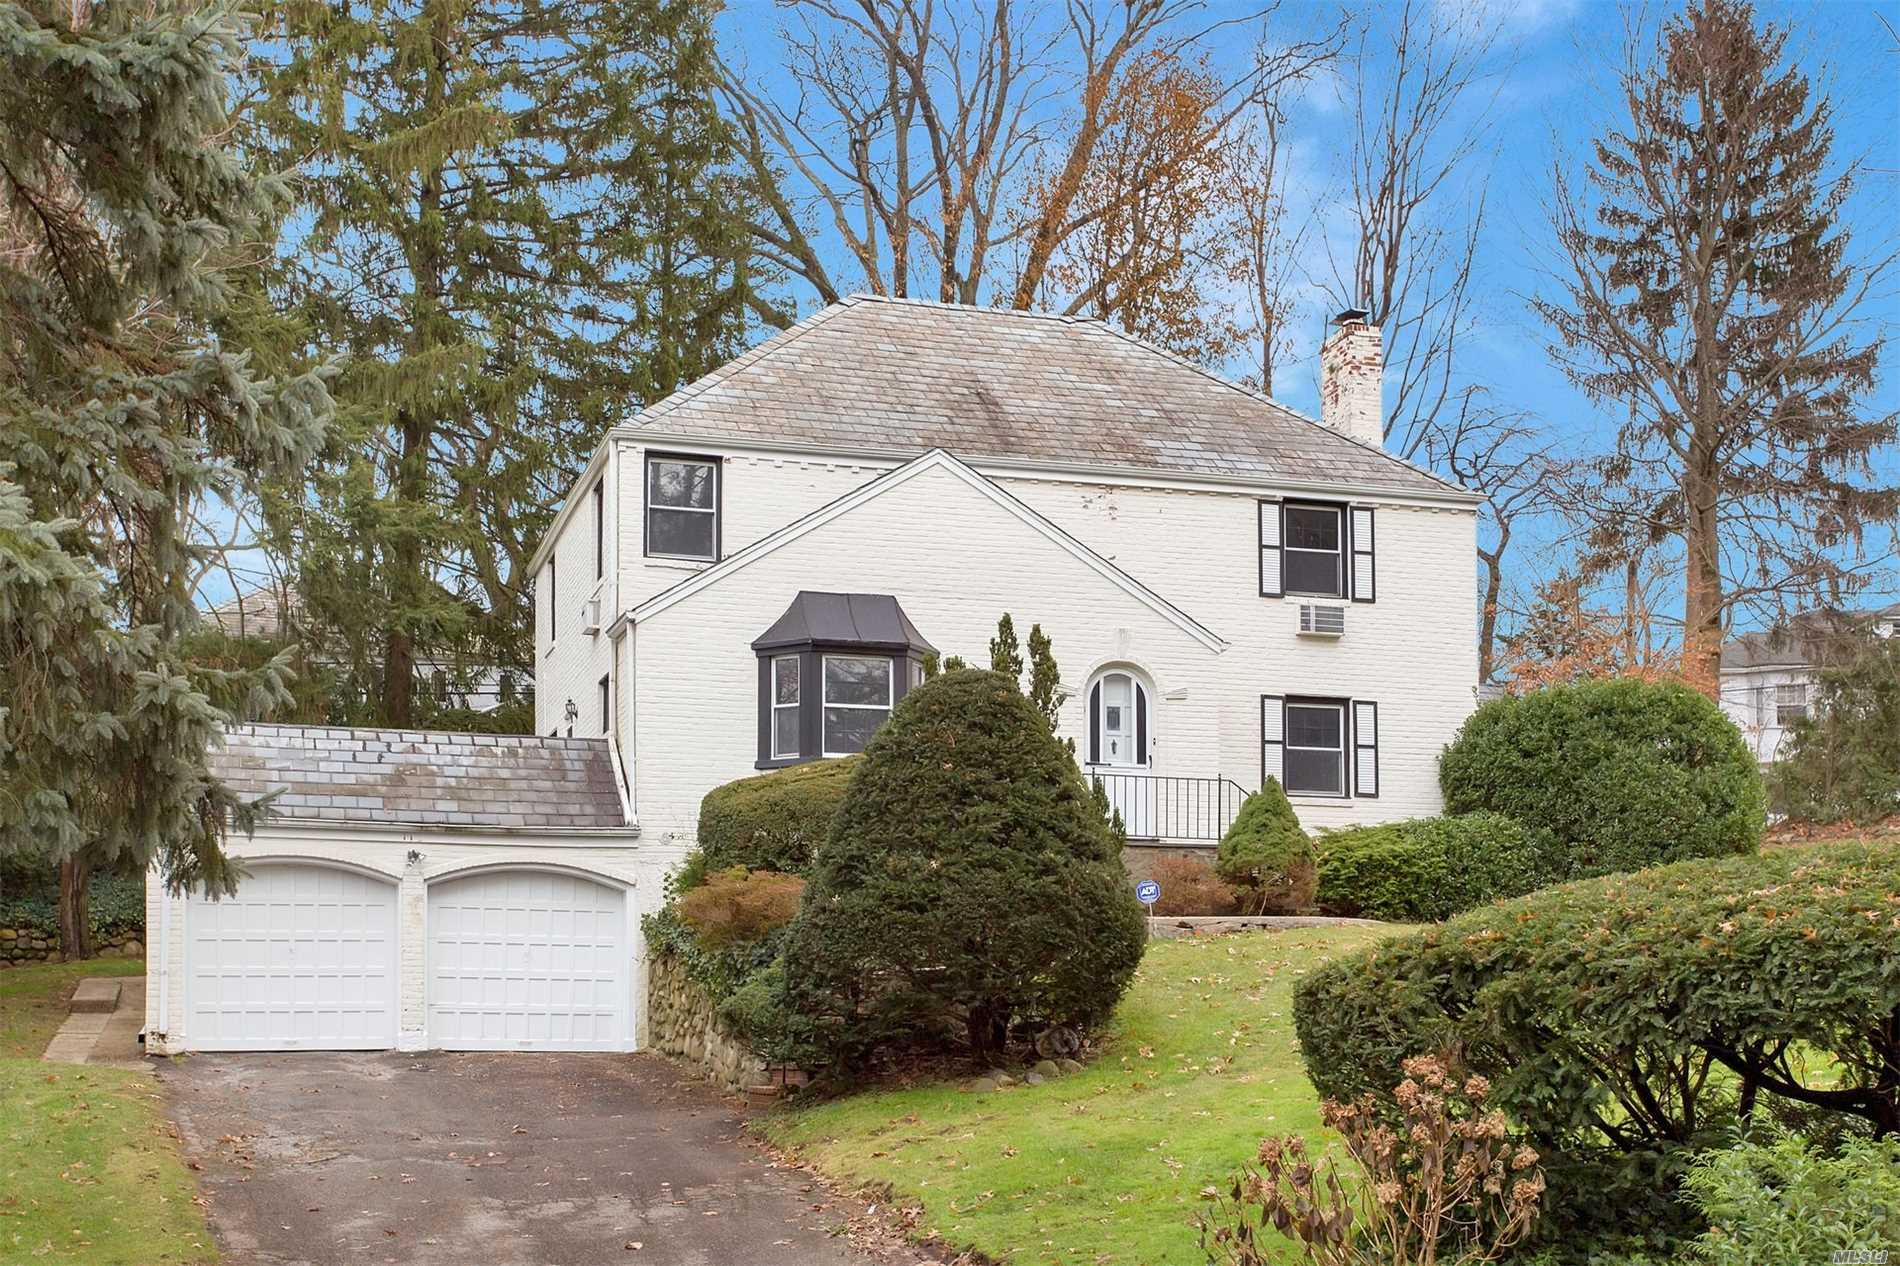 Fabulous Strathmore Vanderbilt Location. Brick Center Hall 4 Bedroom Colonial With Large Foyer With Curved Staircase. Living Room With Fireplace. Large Formal Rooms, Gas Cooking. Low Taxes. House Being Sold As Is.